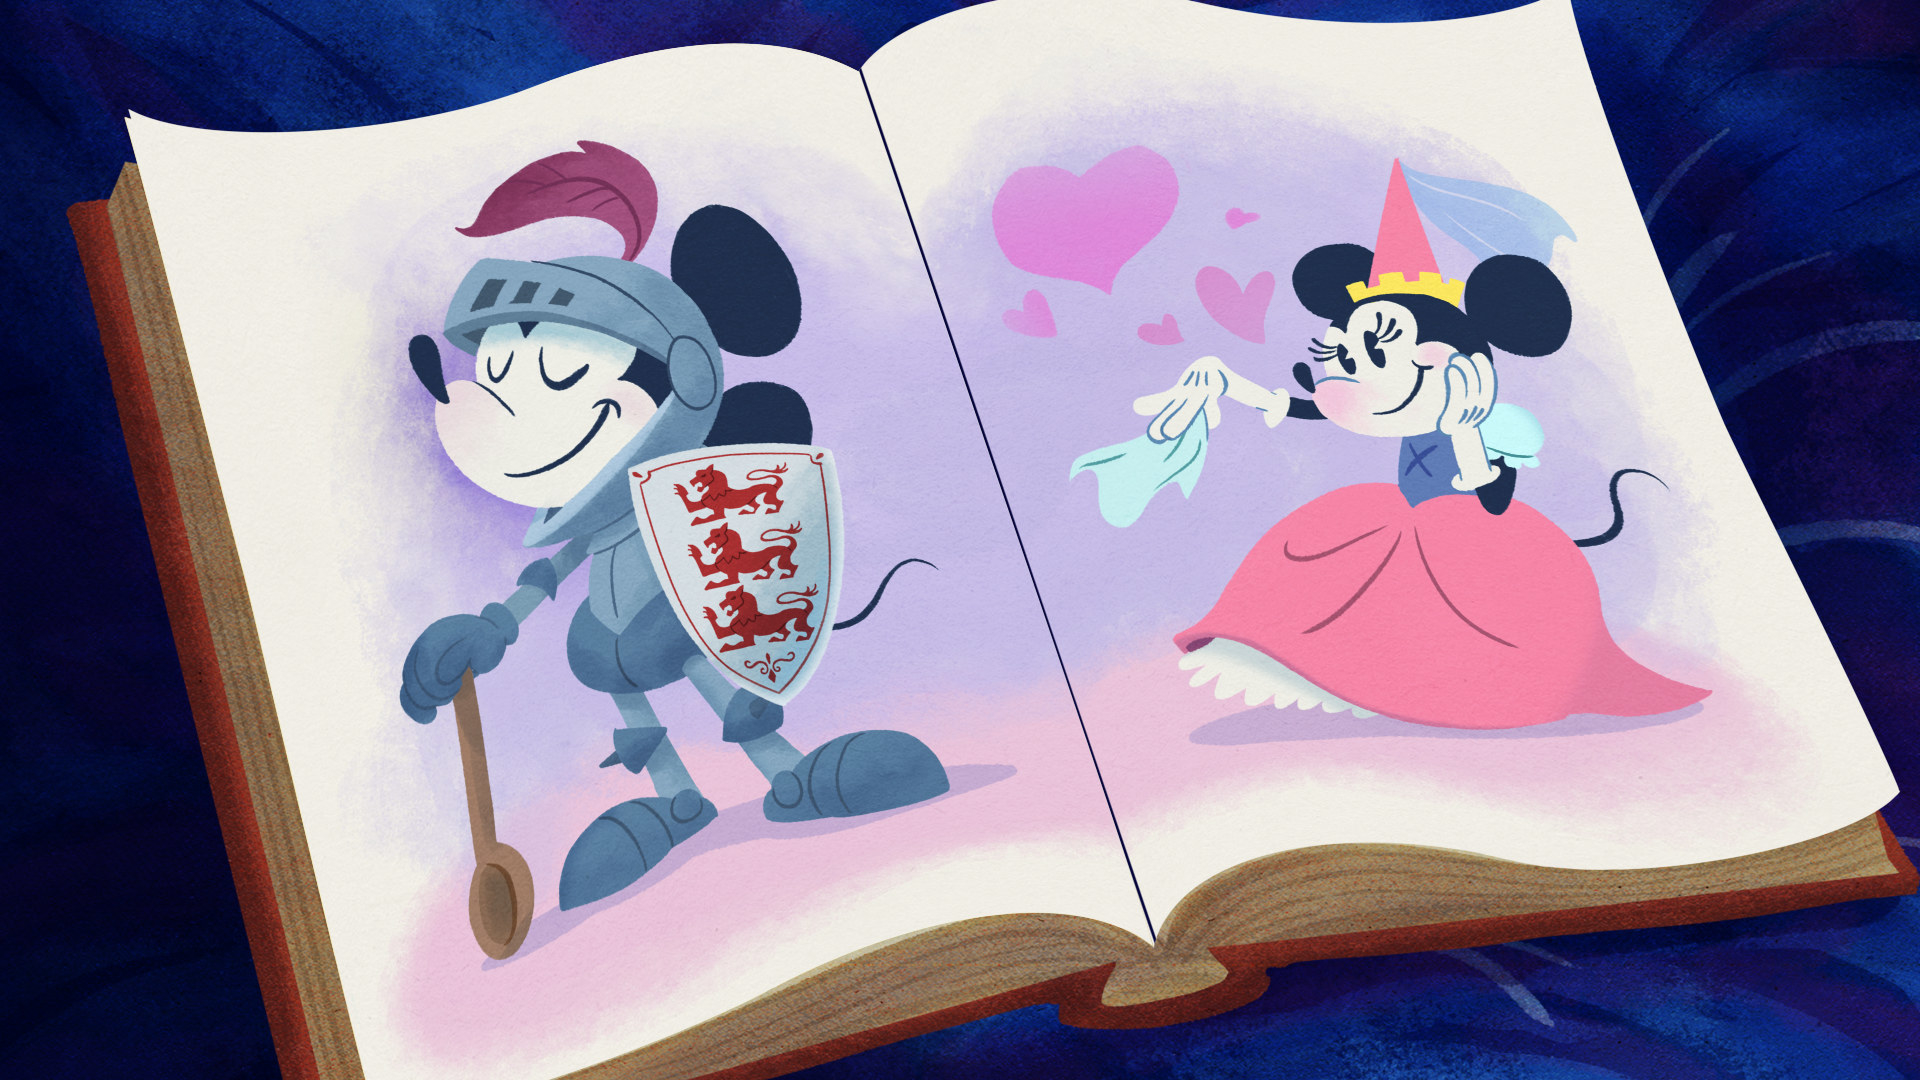 A fairytale book open with Mickey as a knight on one side and Minnie as a princess on the other